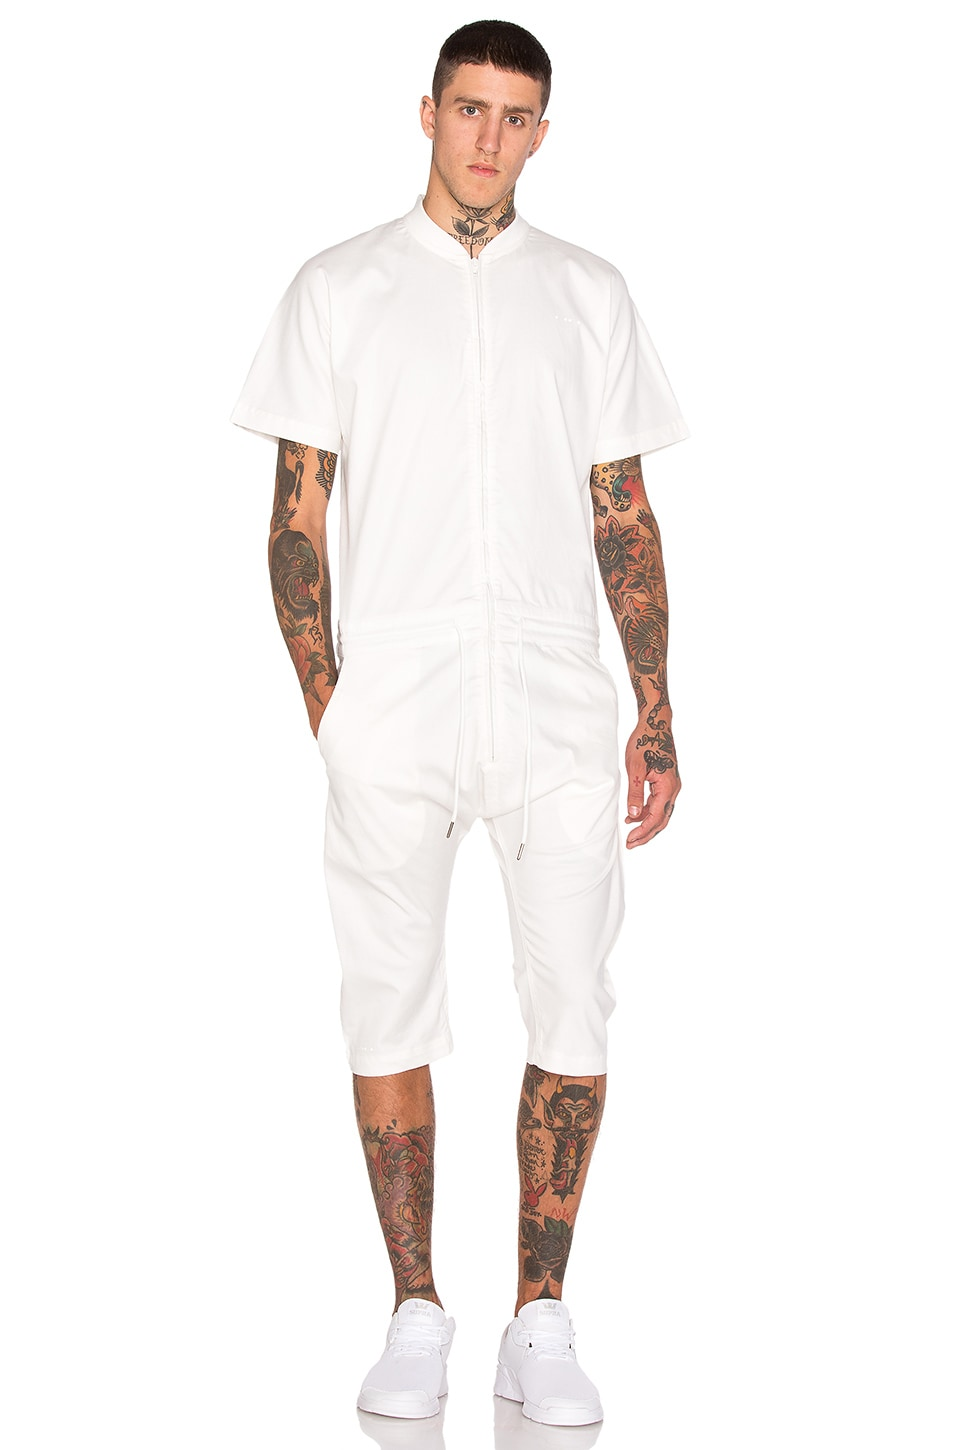 Fashion 2017 man - Publish Mono Ghost One Piece In White Revolve